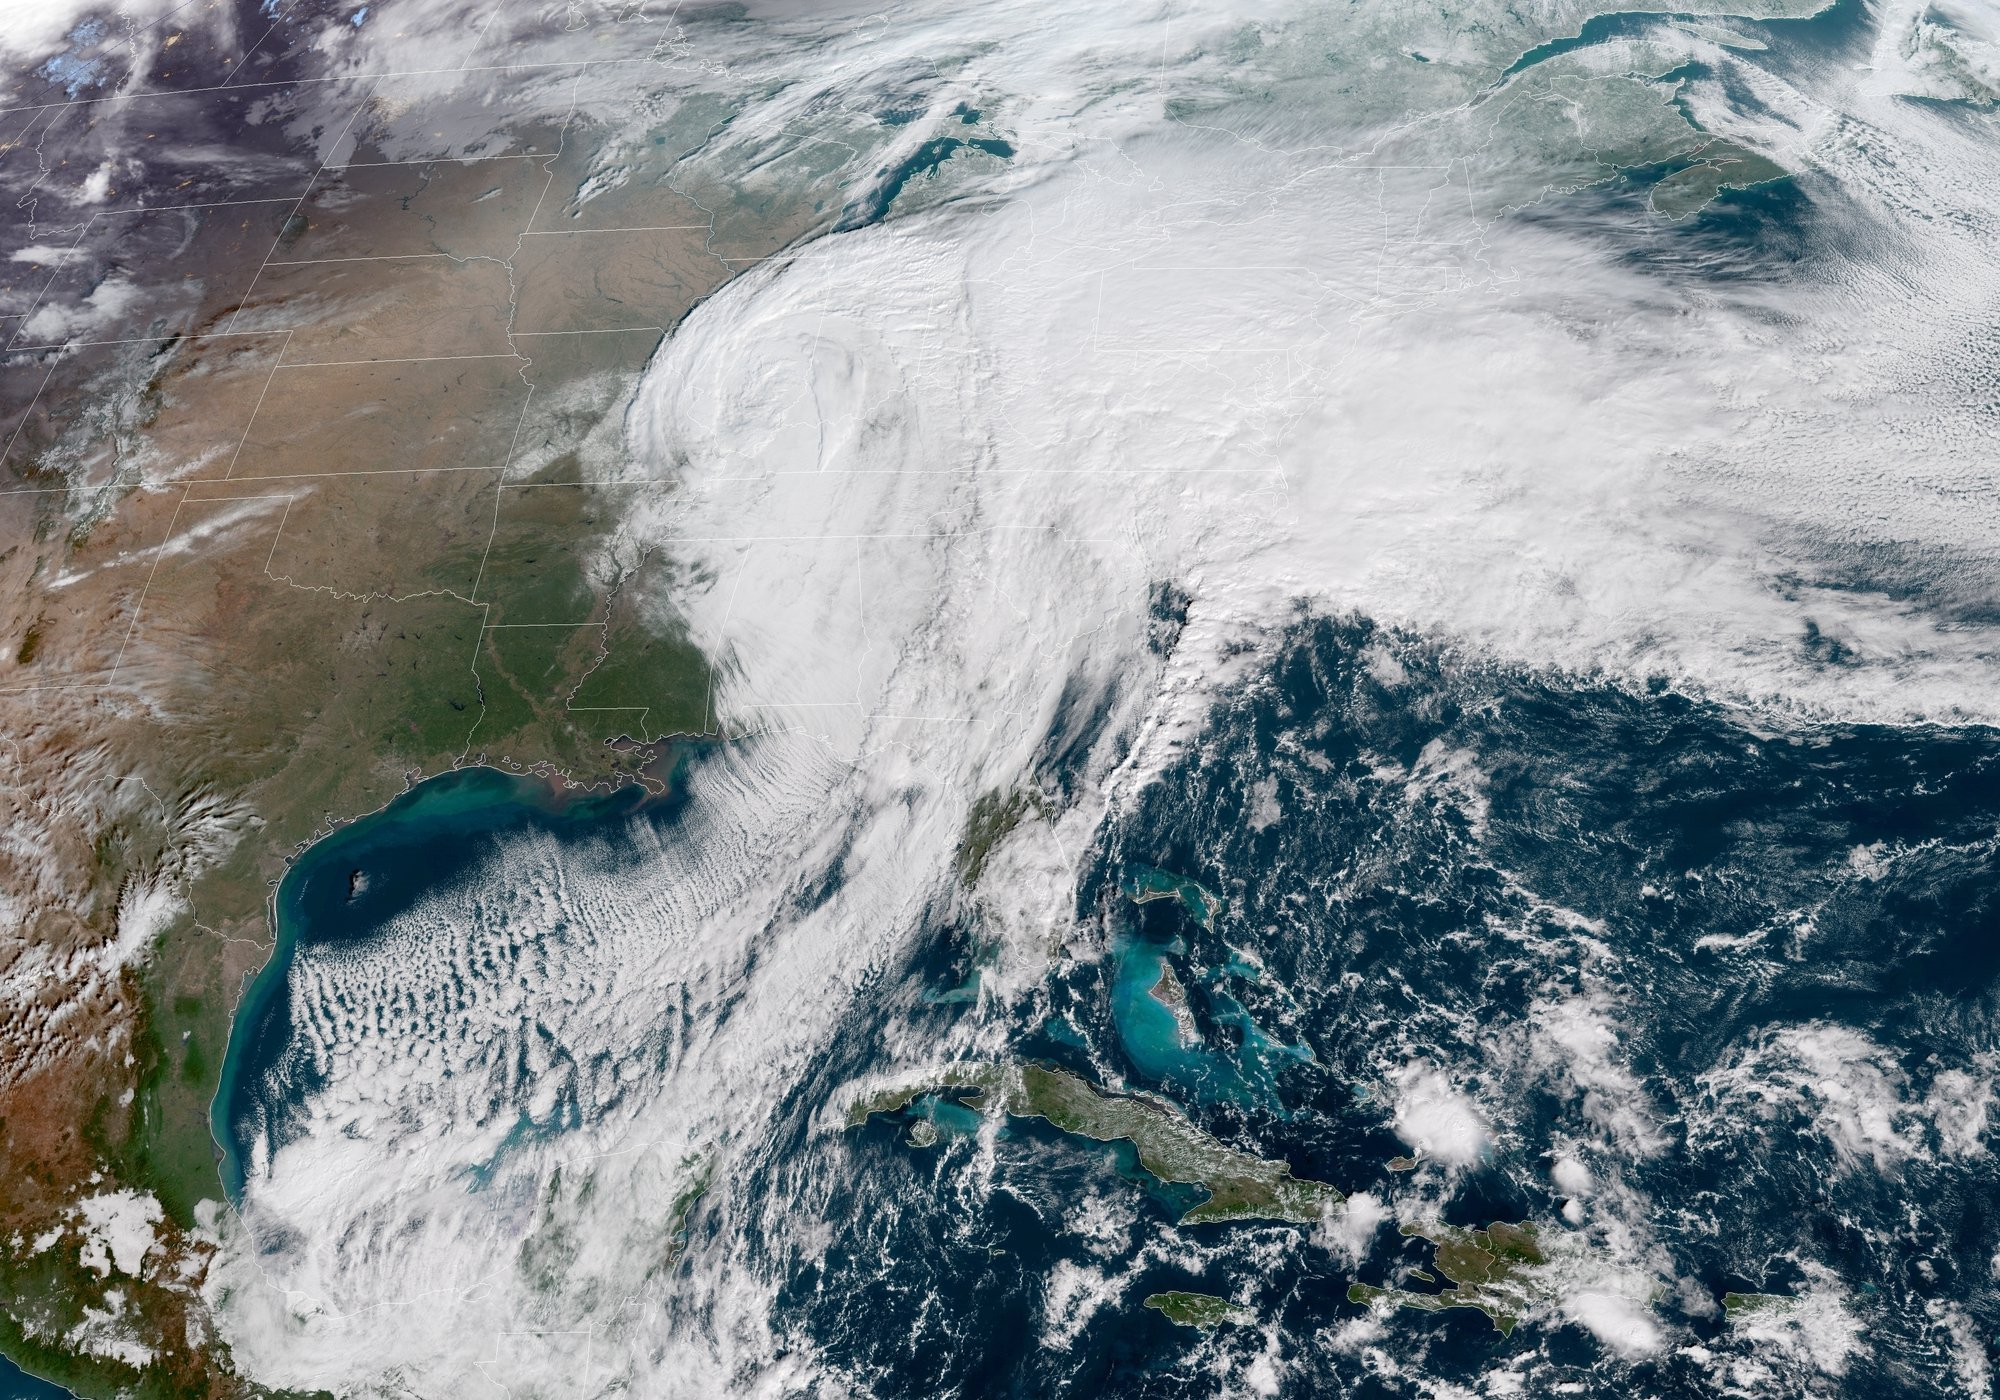 United States Winter Storm 2018 | Source: Wikimedia Commons